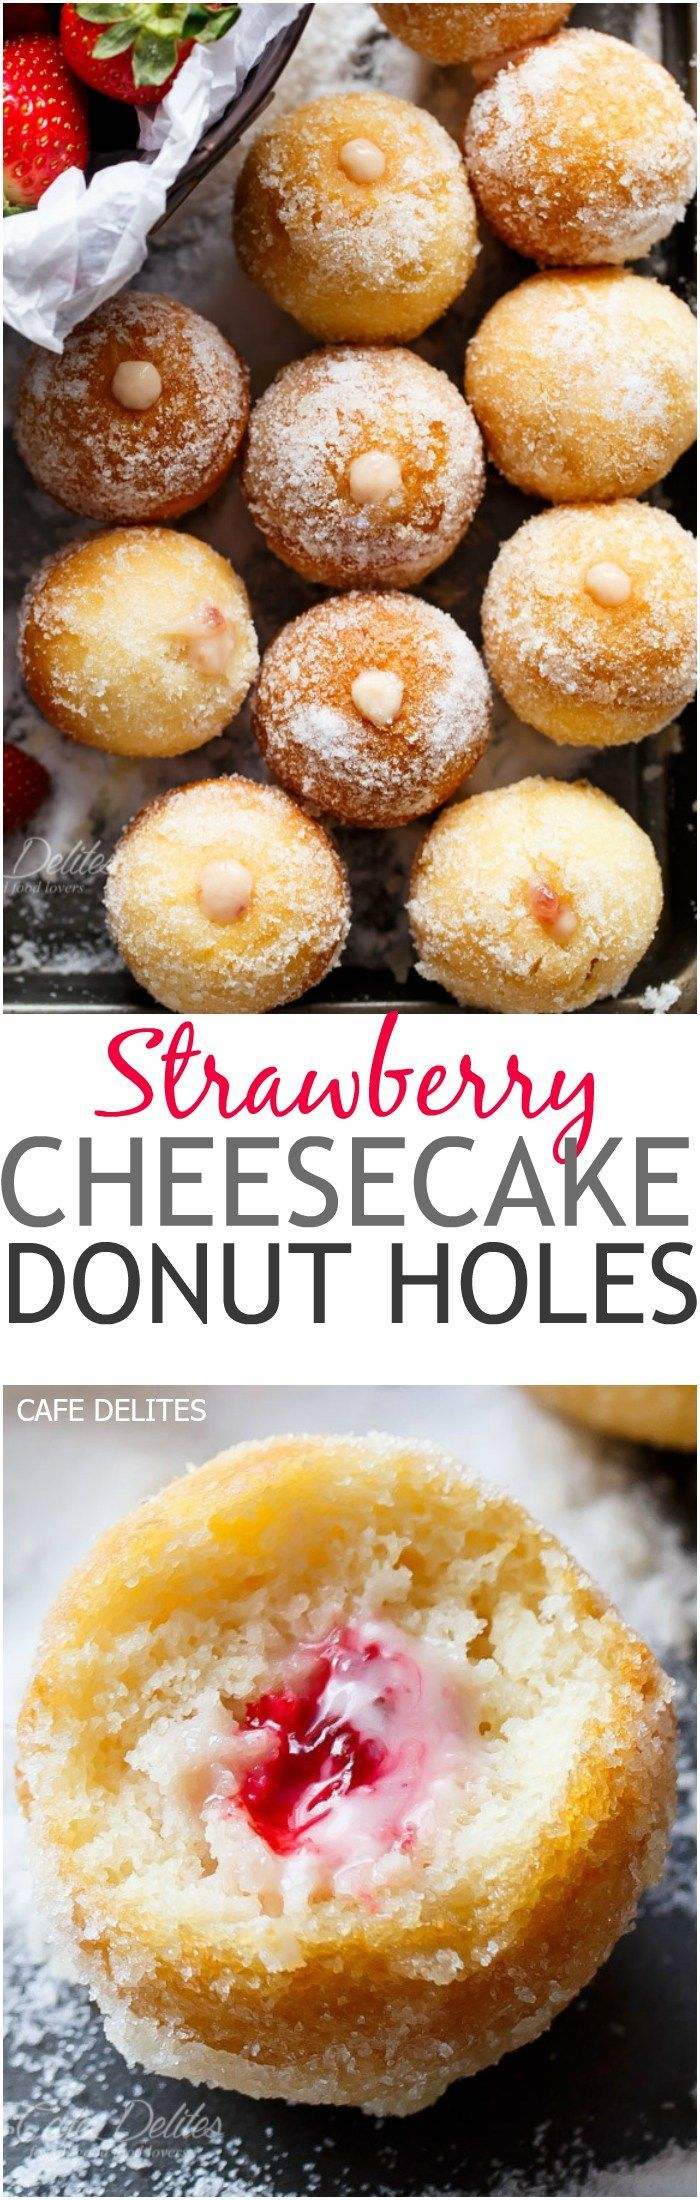 Lightened up soft and fluffy Strawberry Cheesecake Donut Holes, filled with sweet strawberry and creamy cheesecake filling! Enjoy with no guilt! | http://cafedelites.com